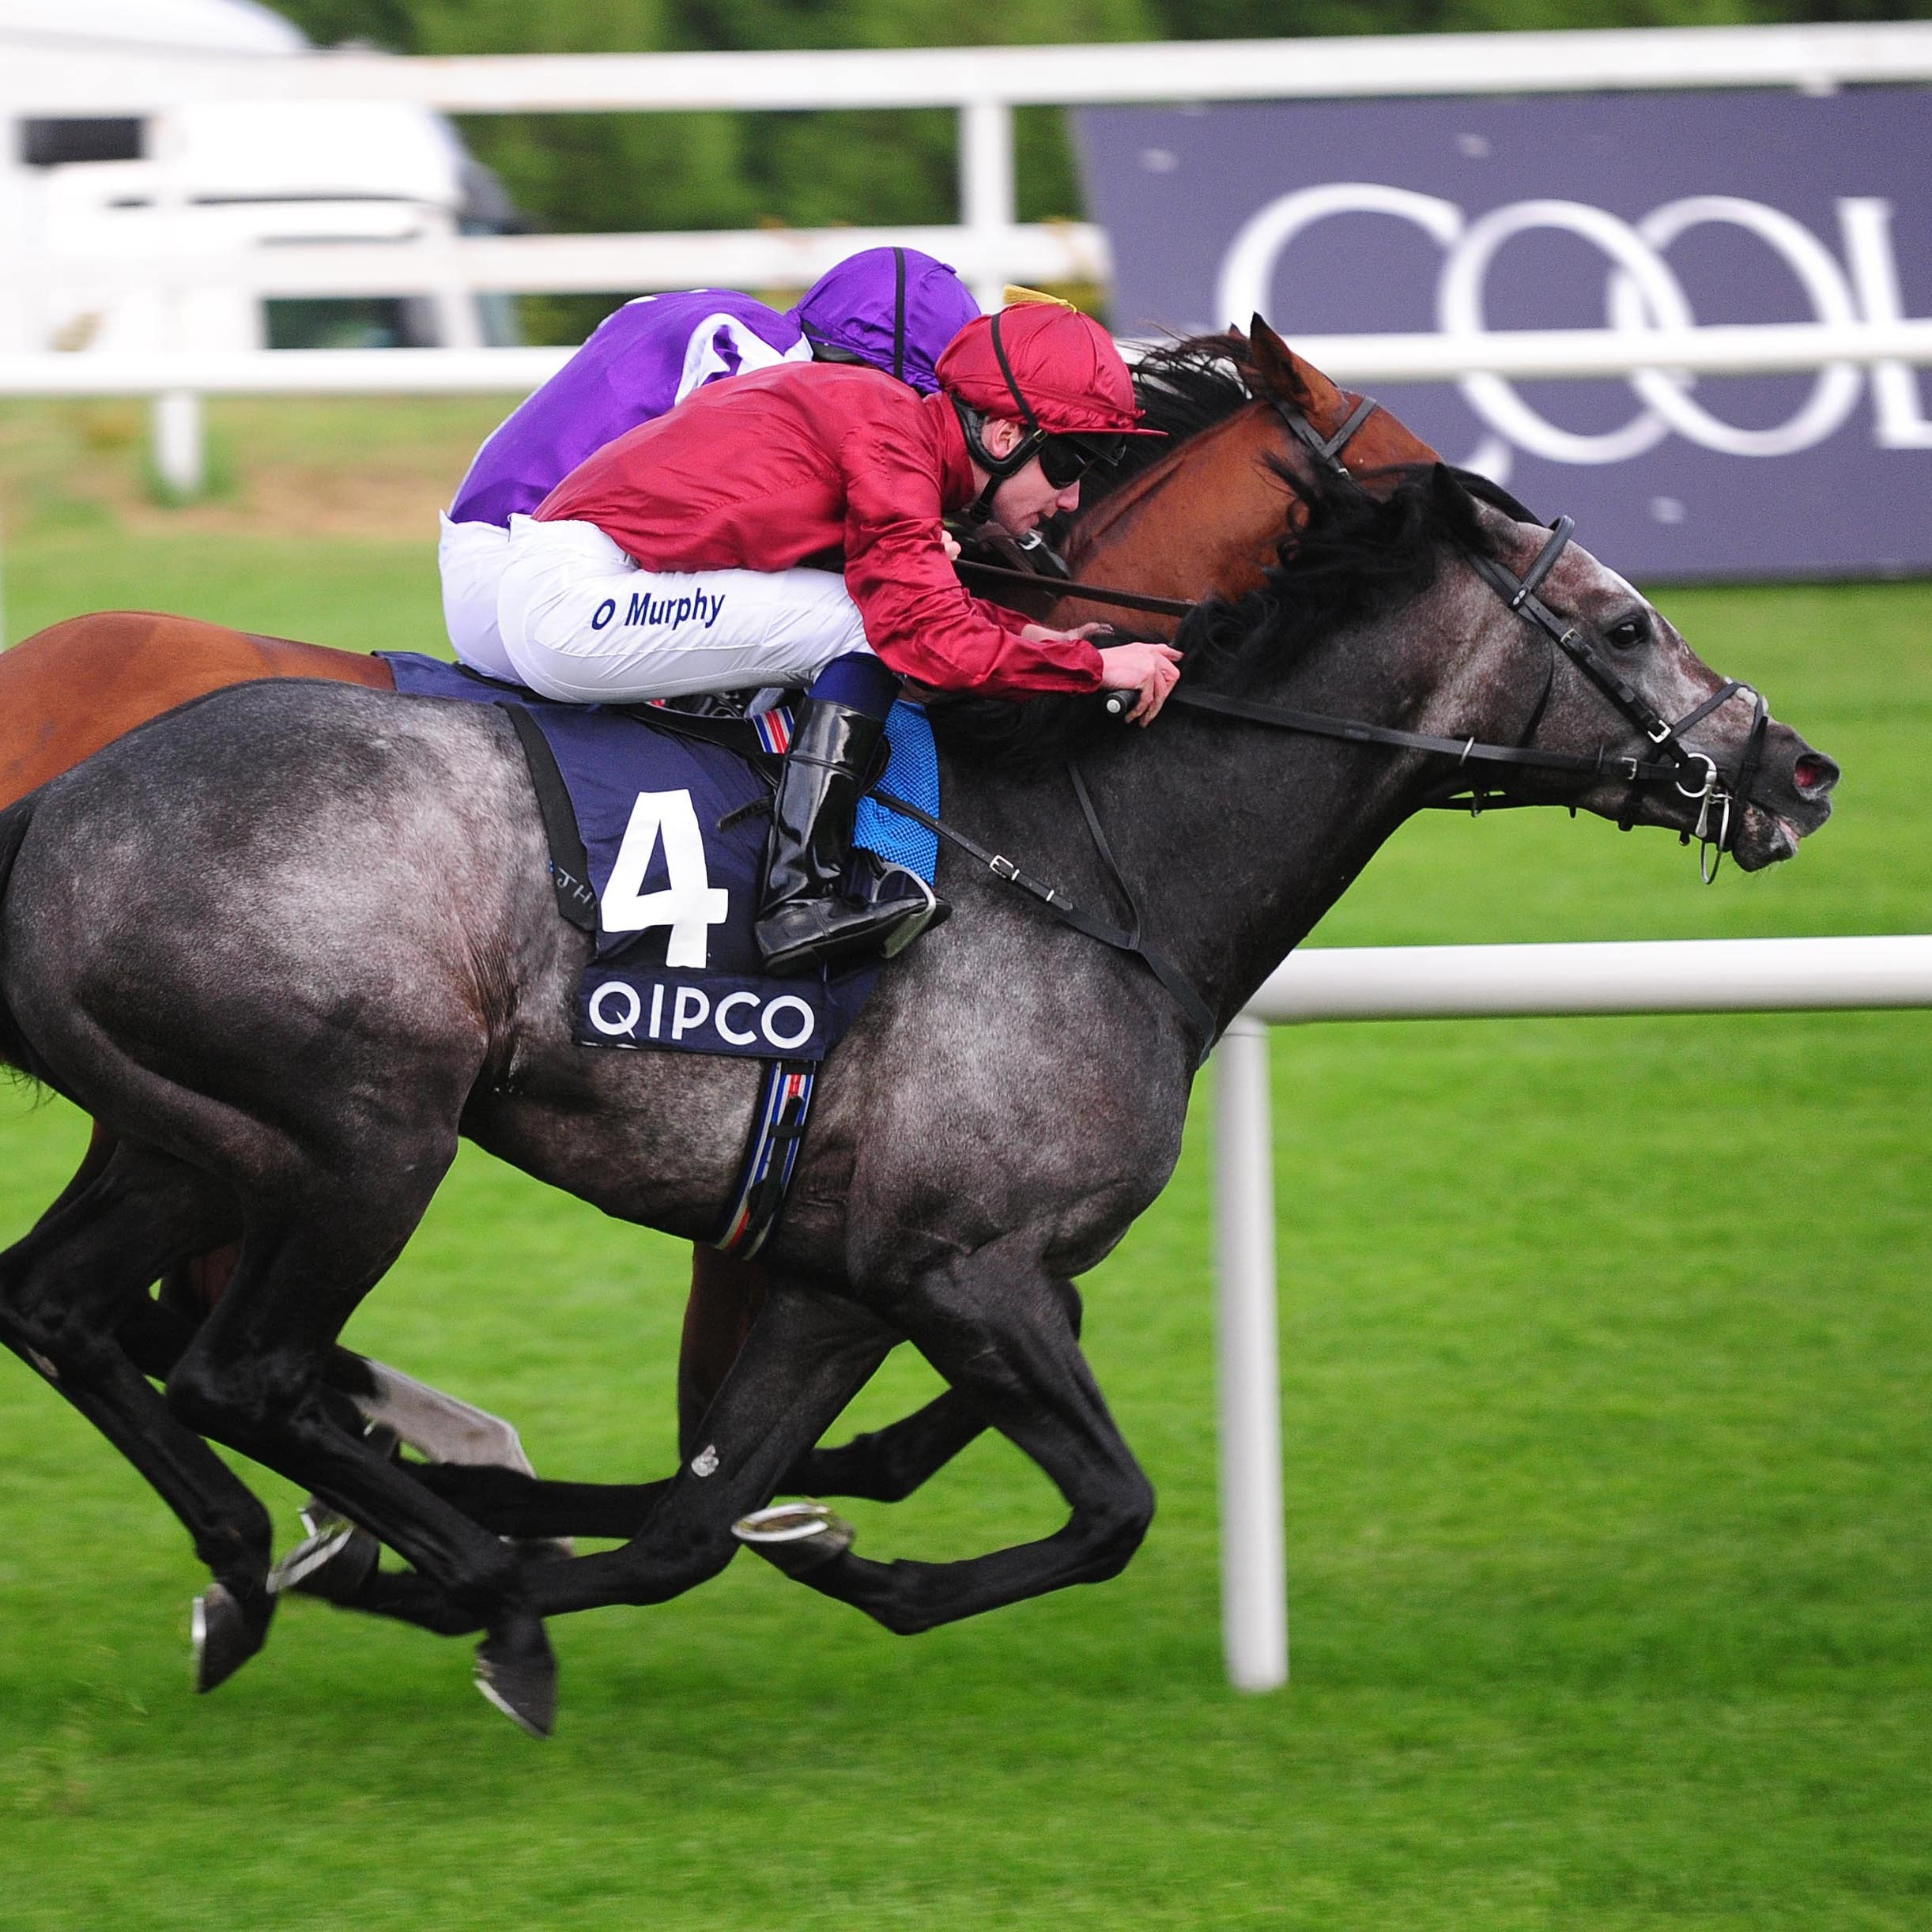 Roaring Lion grabs Saxon Warrior on the line to win the Irish Champion Stakes at Leopardstown